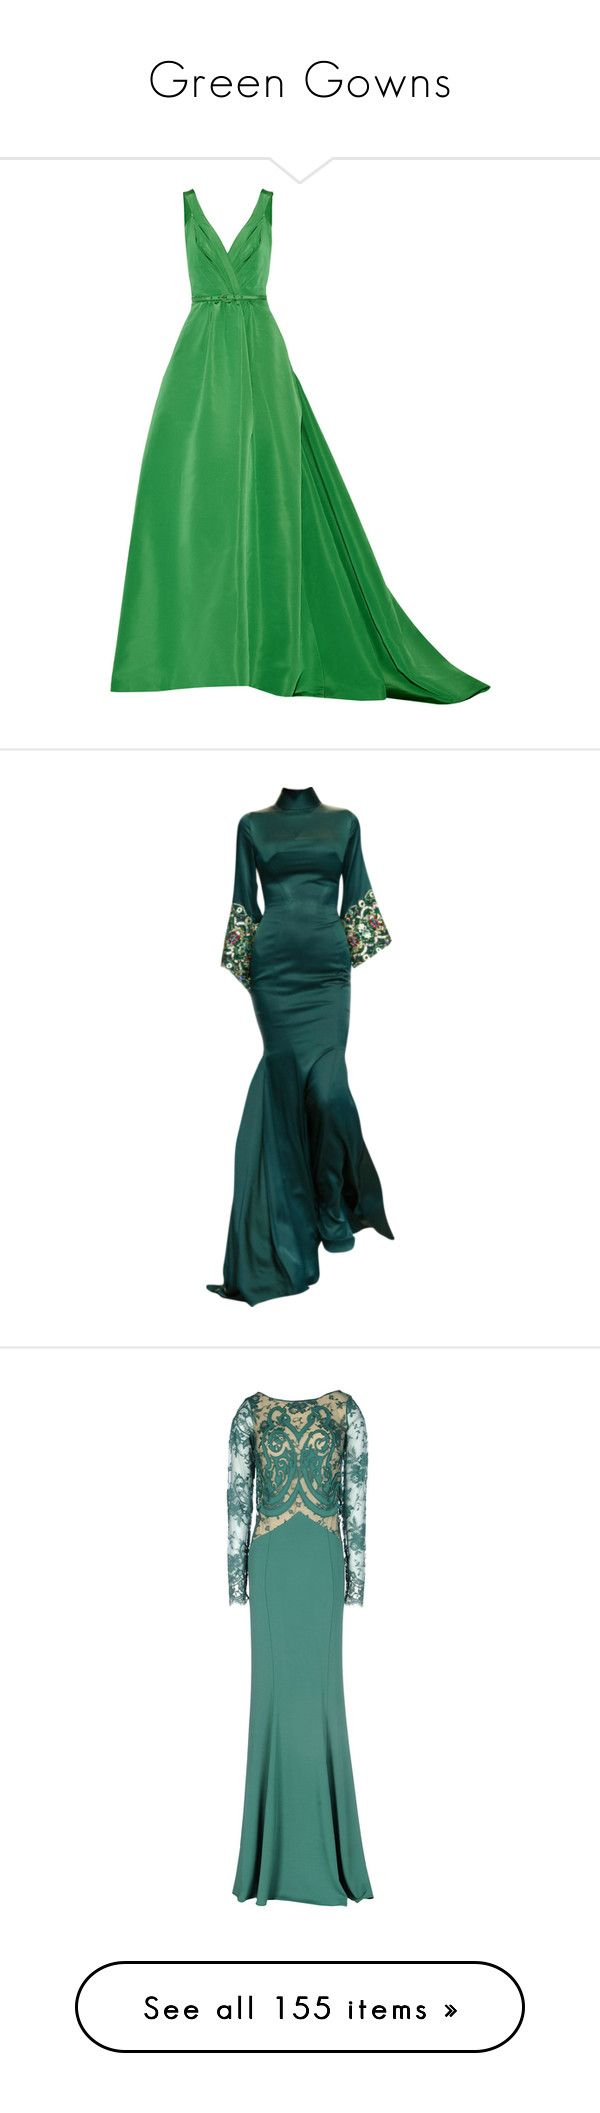 """""""Green Gowns"""" by srta-sr ❤ liked on Polyvore featuring smrgowns, dresses, gowns, oscar de la renta, dresses & rompers, long dress, green, green gown, green silk dress and oscar de la renta gowns"""